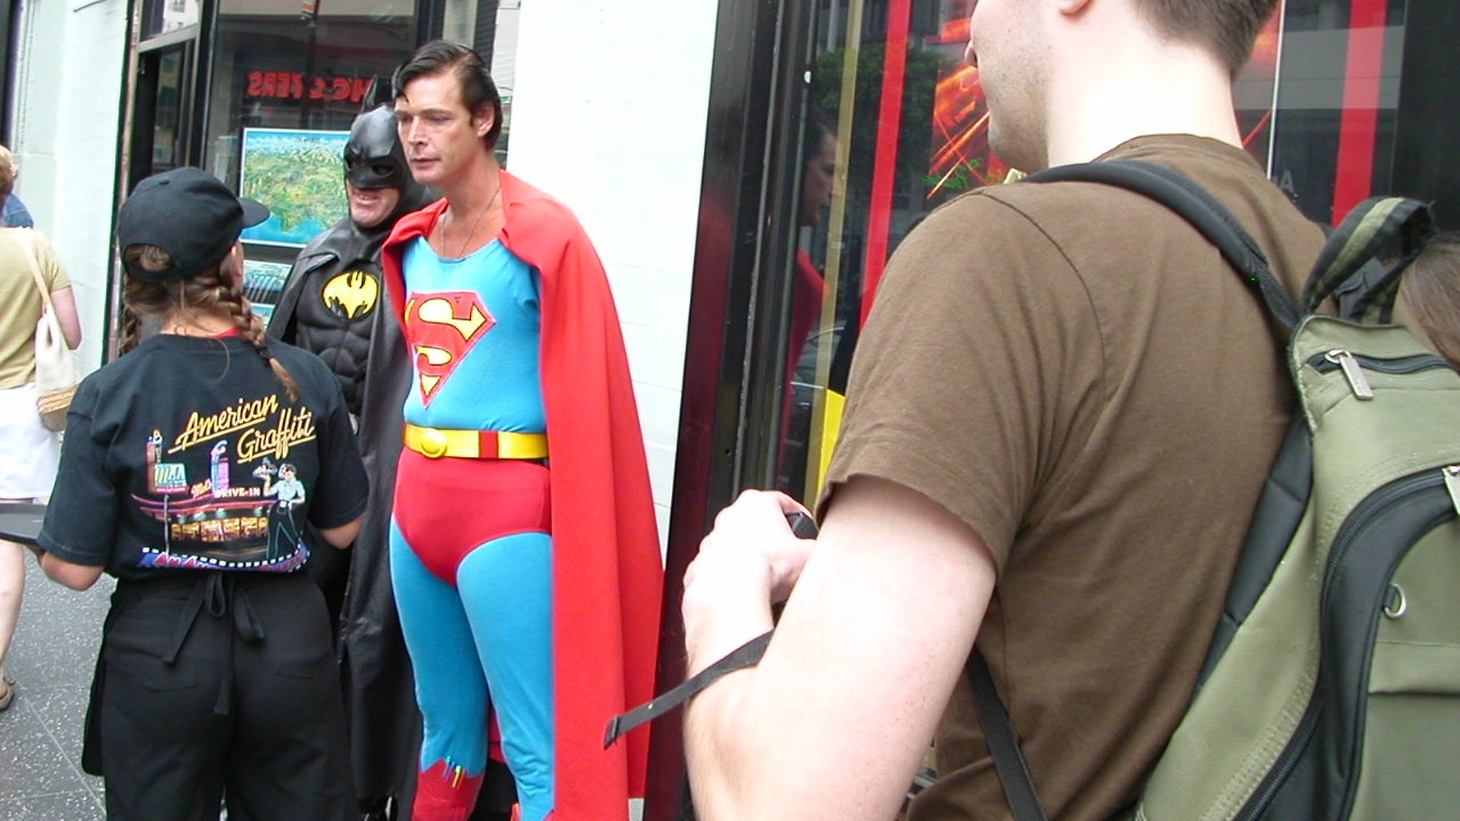 Christopher Dennis, who has dressed up as Superman for years and works for tips outside Mann's Chinese Theater on Hollywood Boulevard.